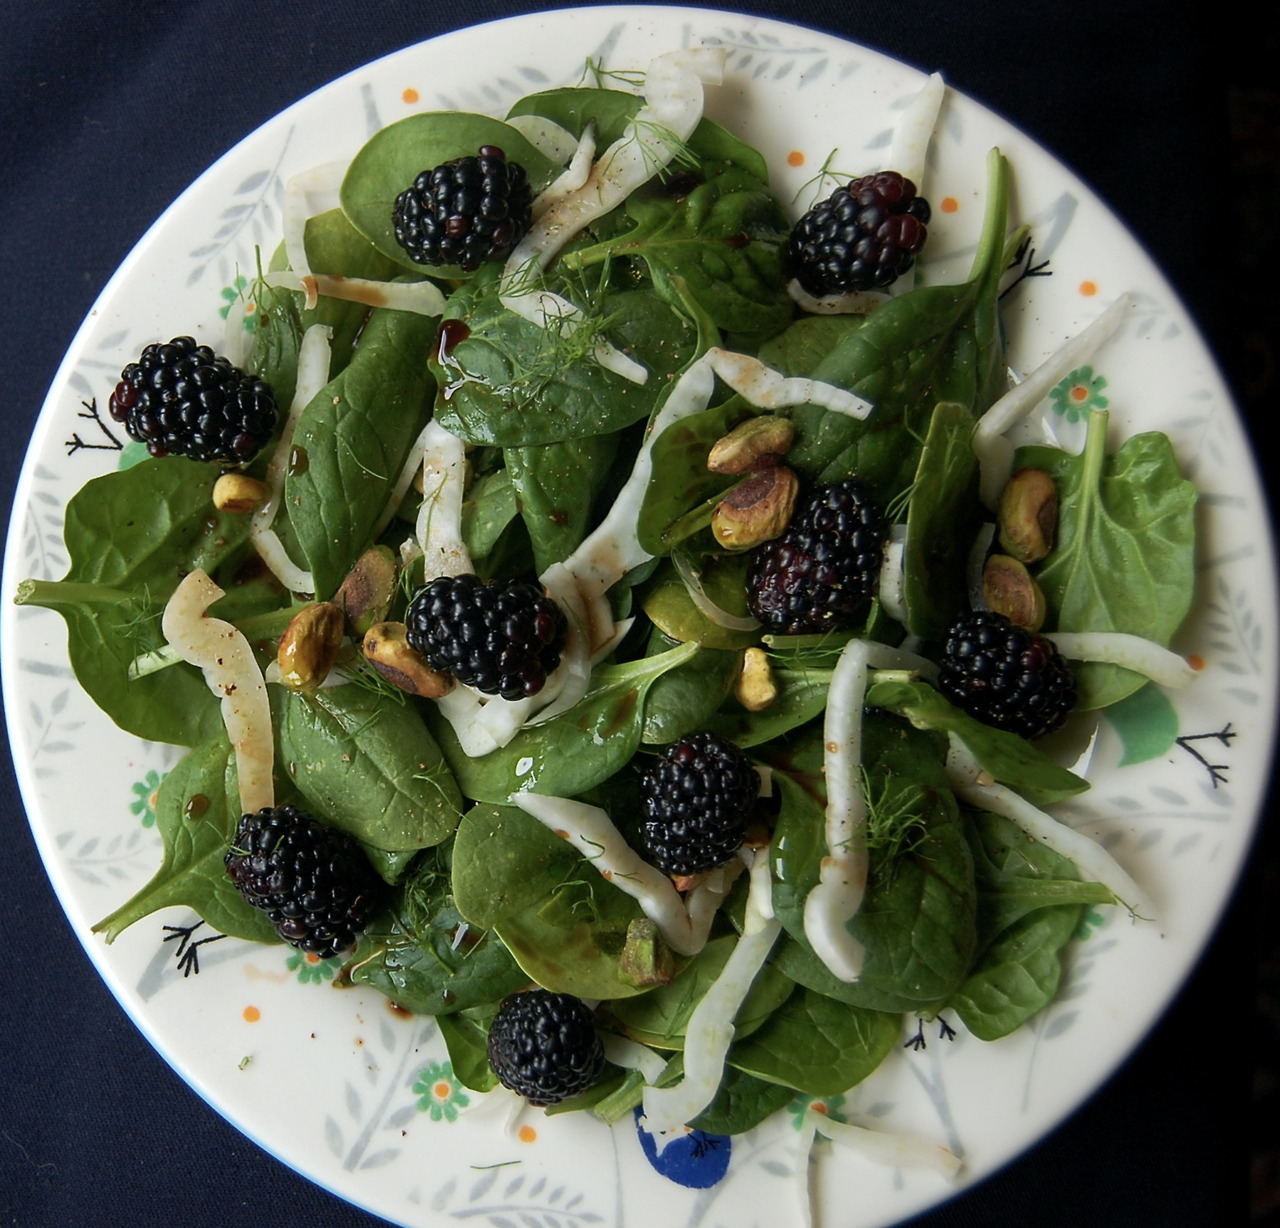 Spinach Blackberry Pistachio Salad:  Tender baby spinach is tossed with sweet blackberries and balanced by nutty pistachios. Fresh fennel bulb adds a slight licorice aroma and balsamic vinegar brings its own tang to this satisfying salad. This recipe comes to us from Elizabeth of Sophisticated Pie.